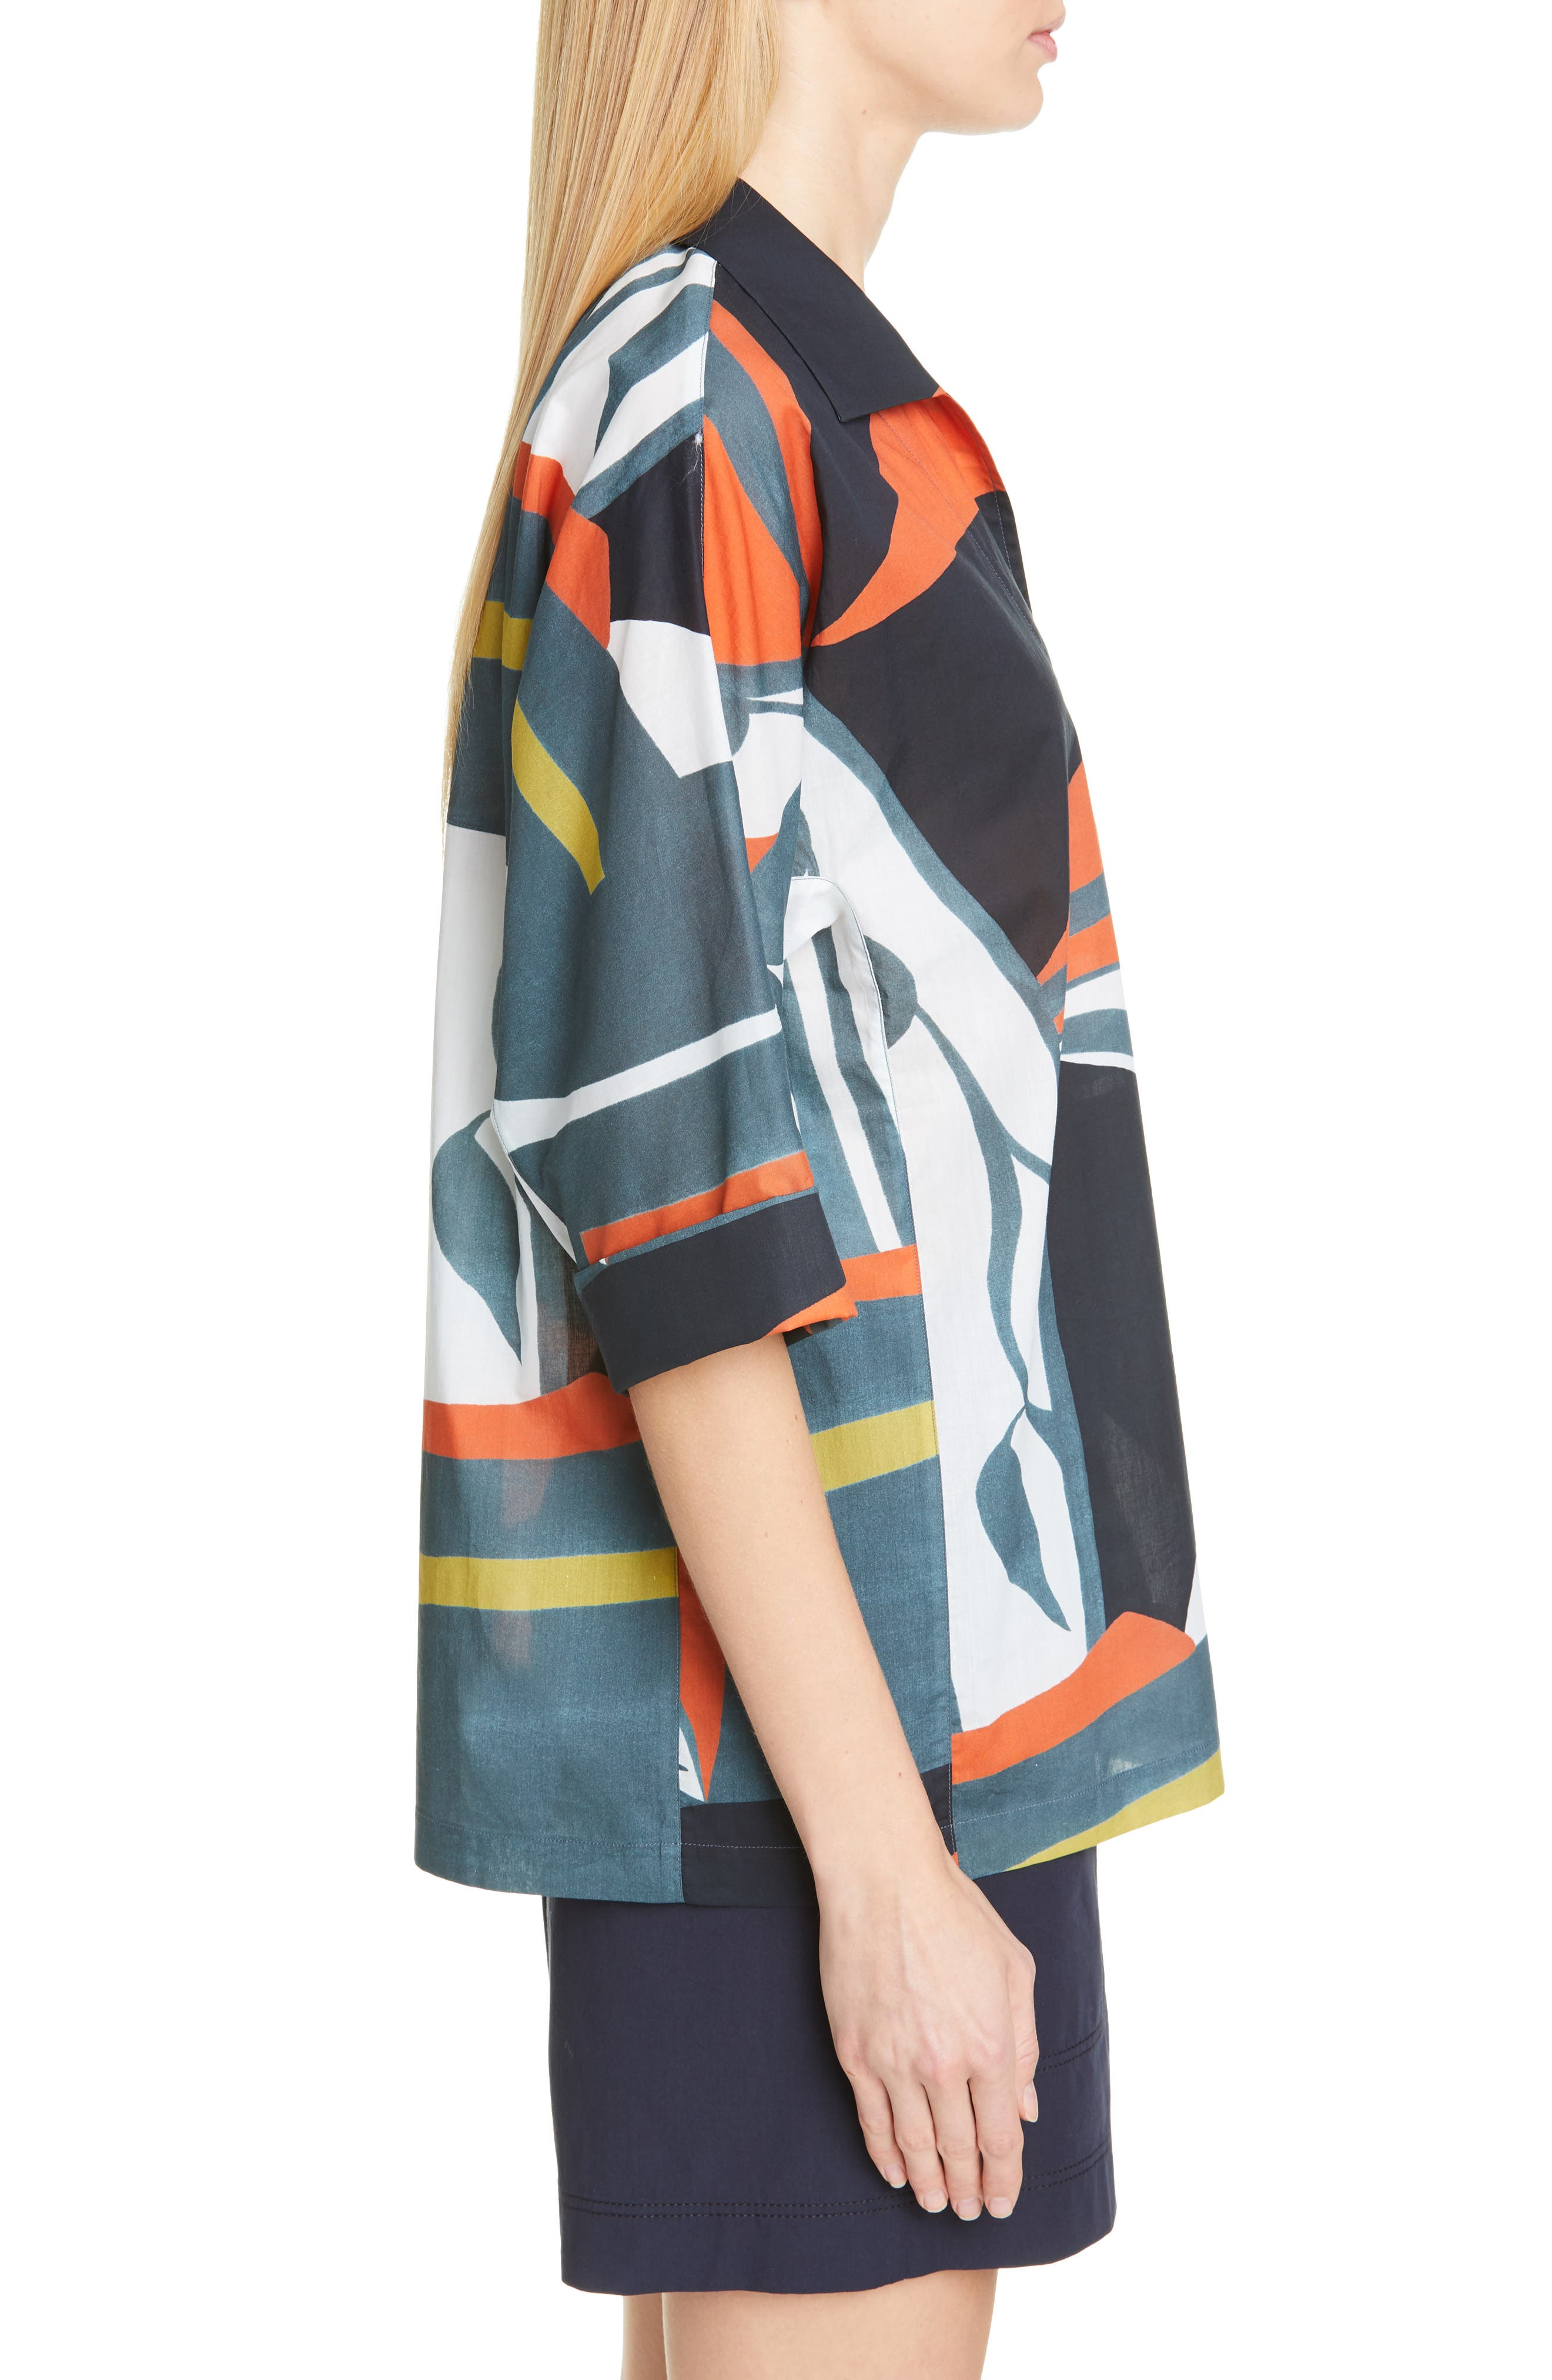 LAFAYETTE 148 NEW YORK, Nicole Artisan Abstract Print Top, Alternate thumbnail 4, color, ATLANTIS TEAL MULTI